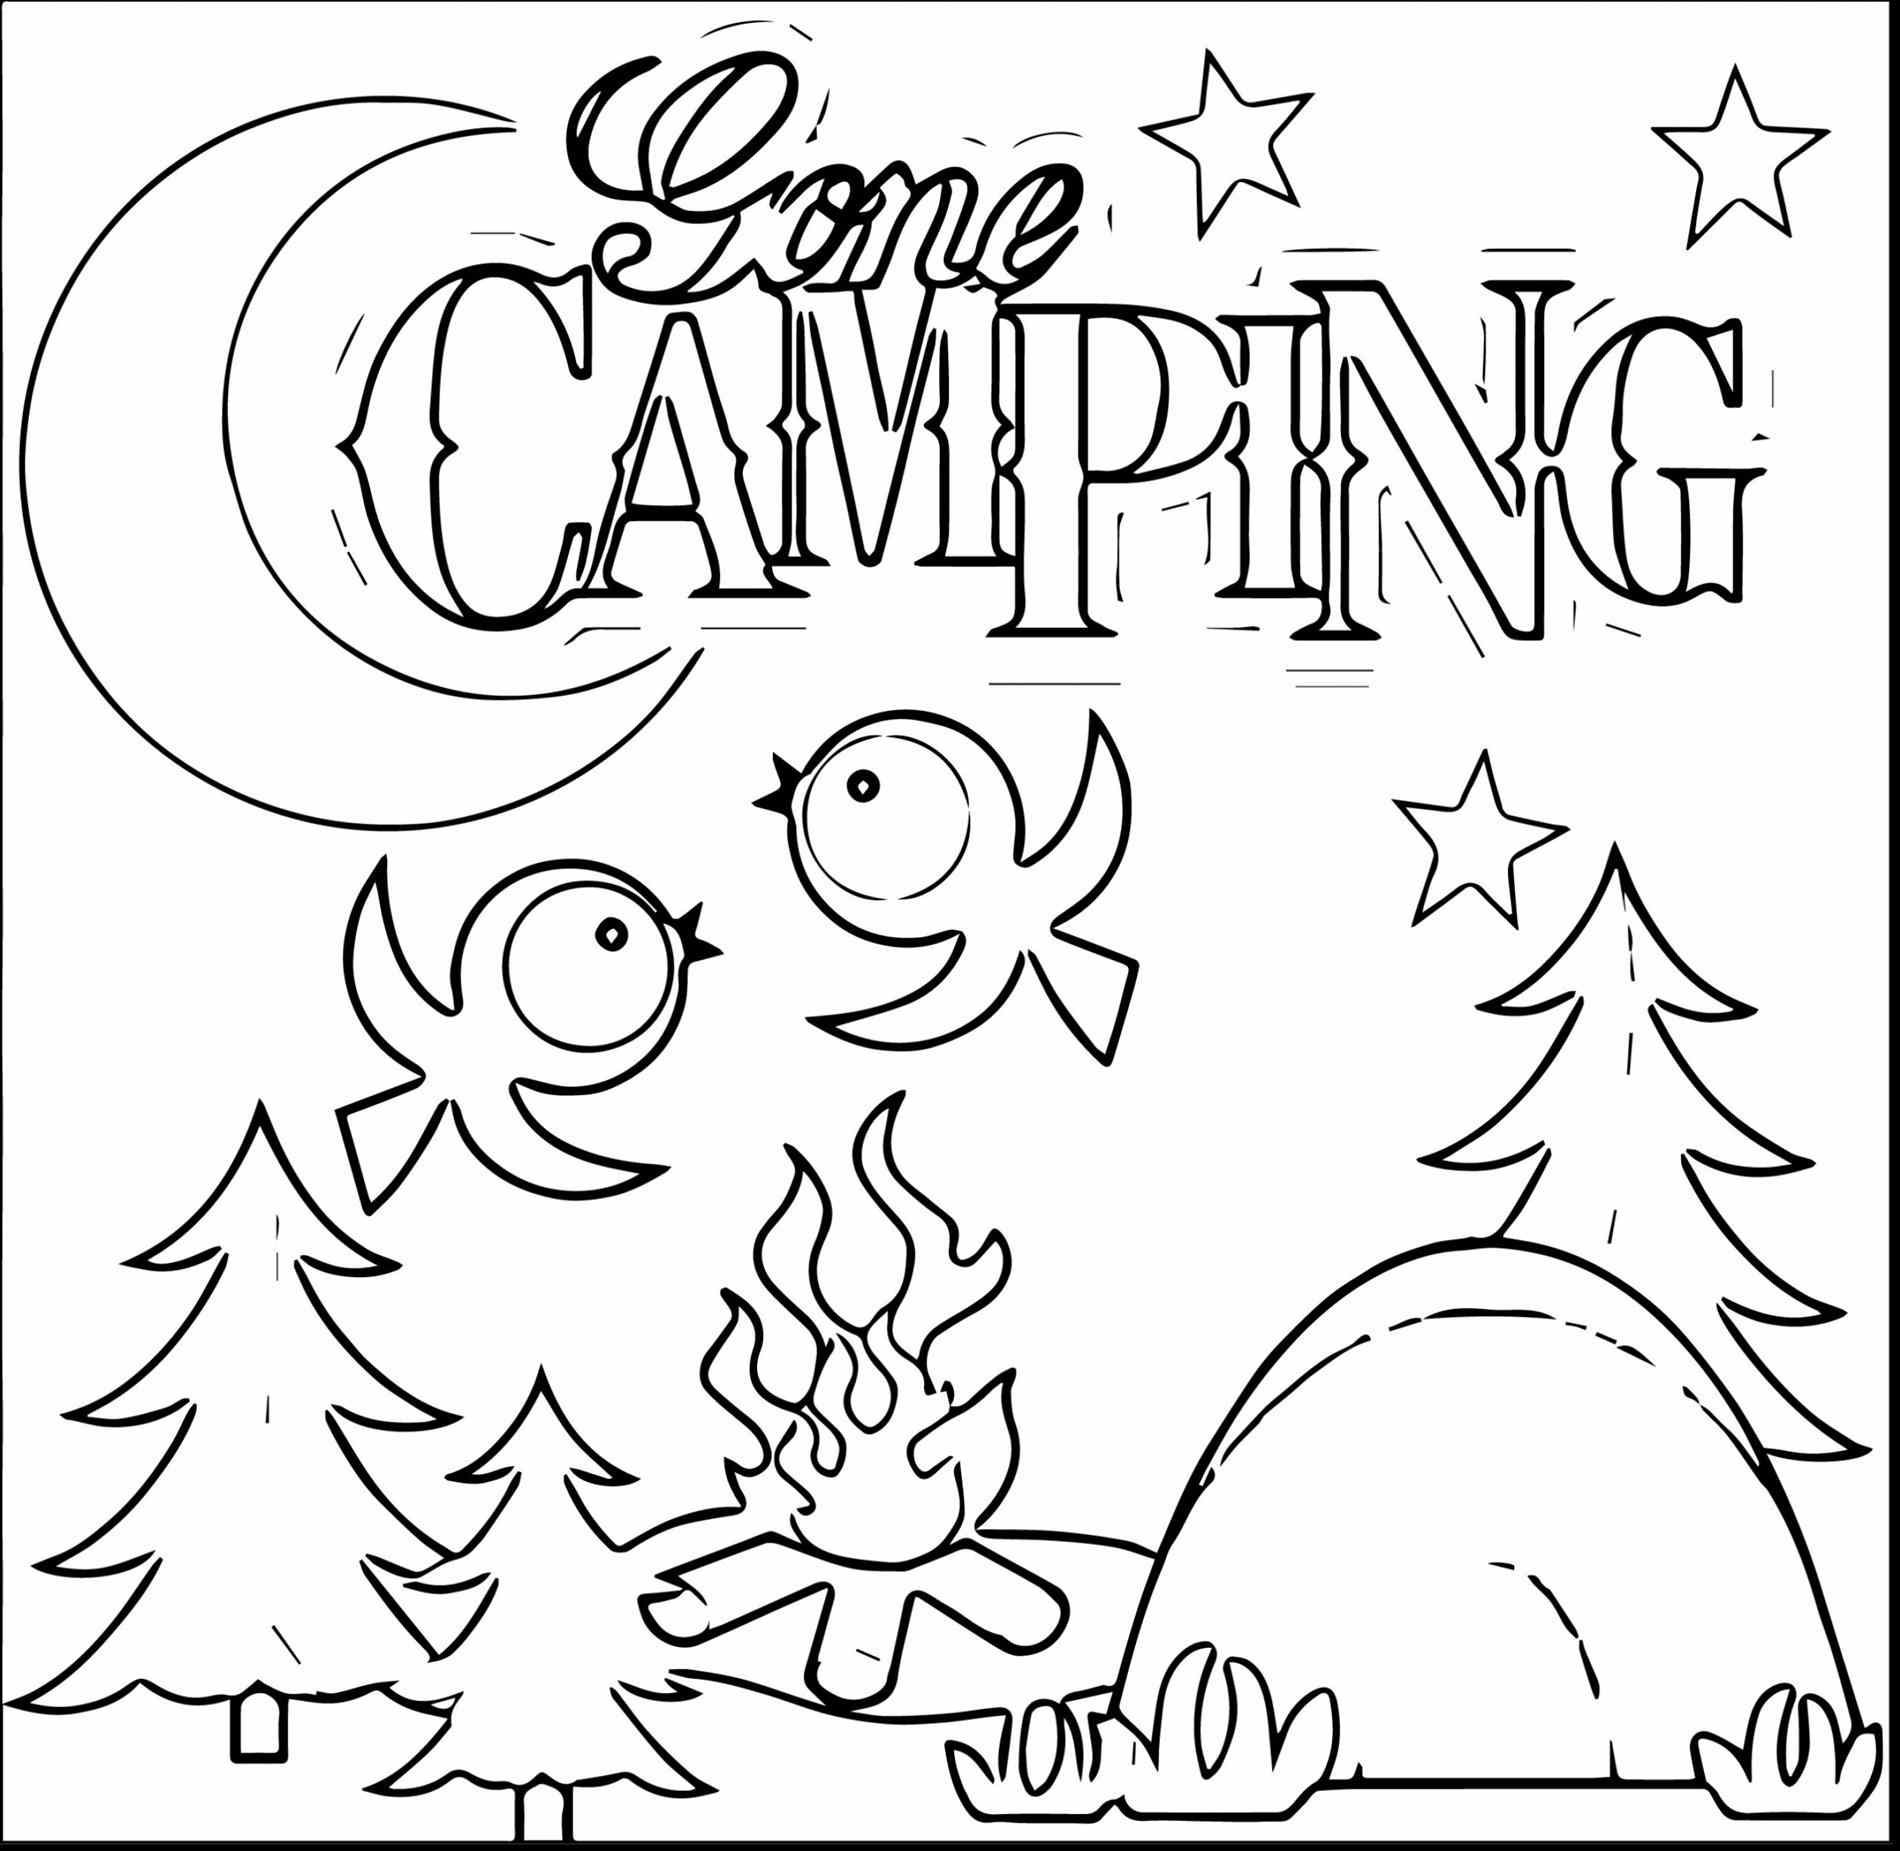 Camping Coloring Pages To Print With Coloring Pages Download And ...